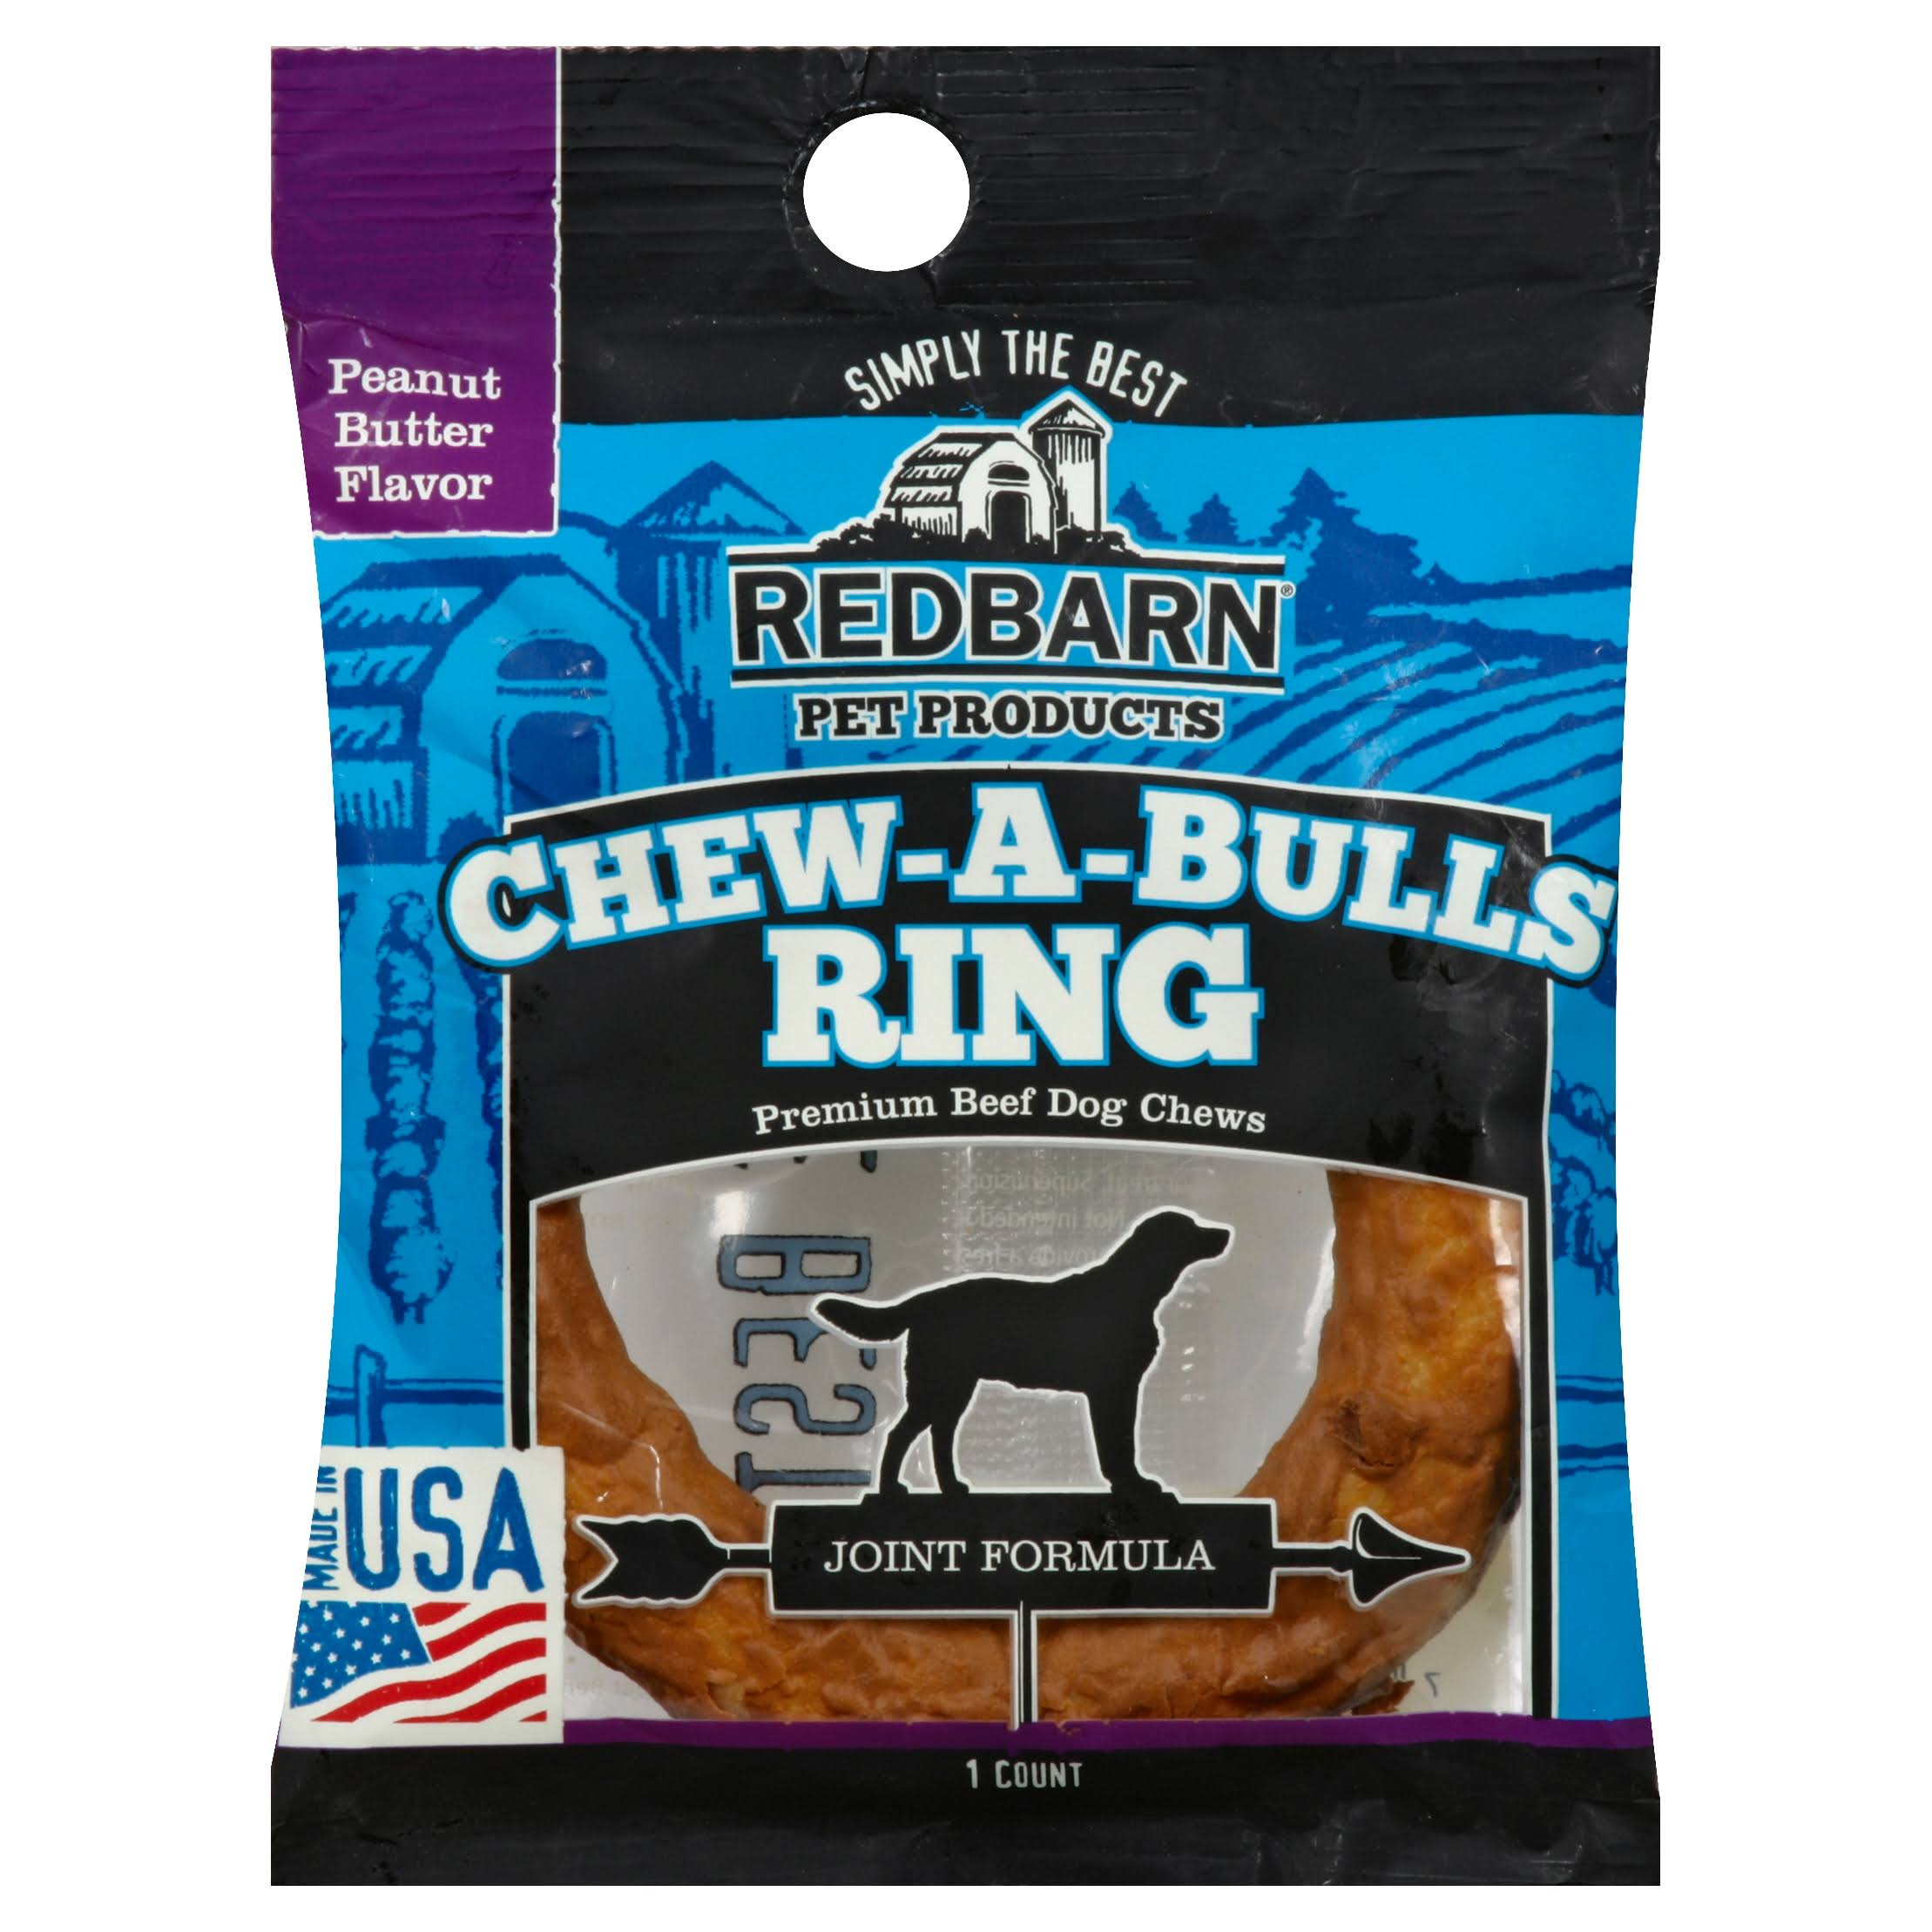 Redbarn Pet Products Chew a Bull Ring Dog Treat - Peanut Butter